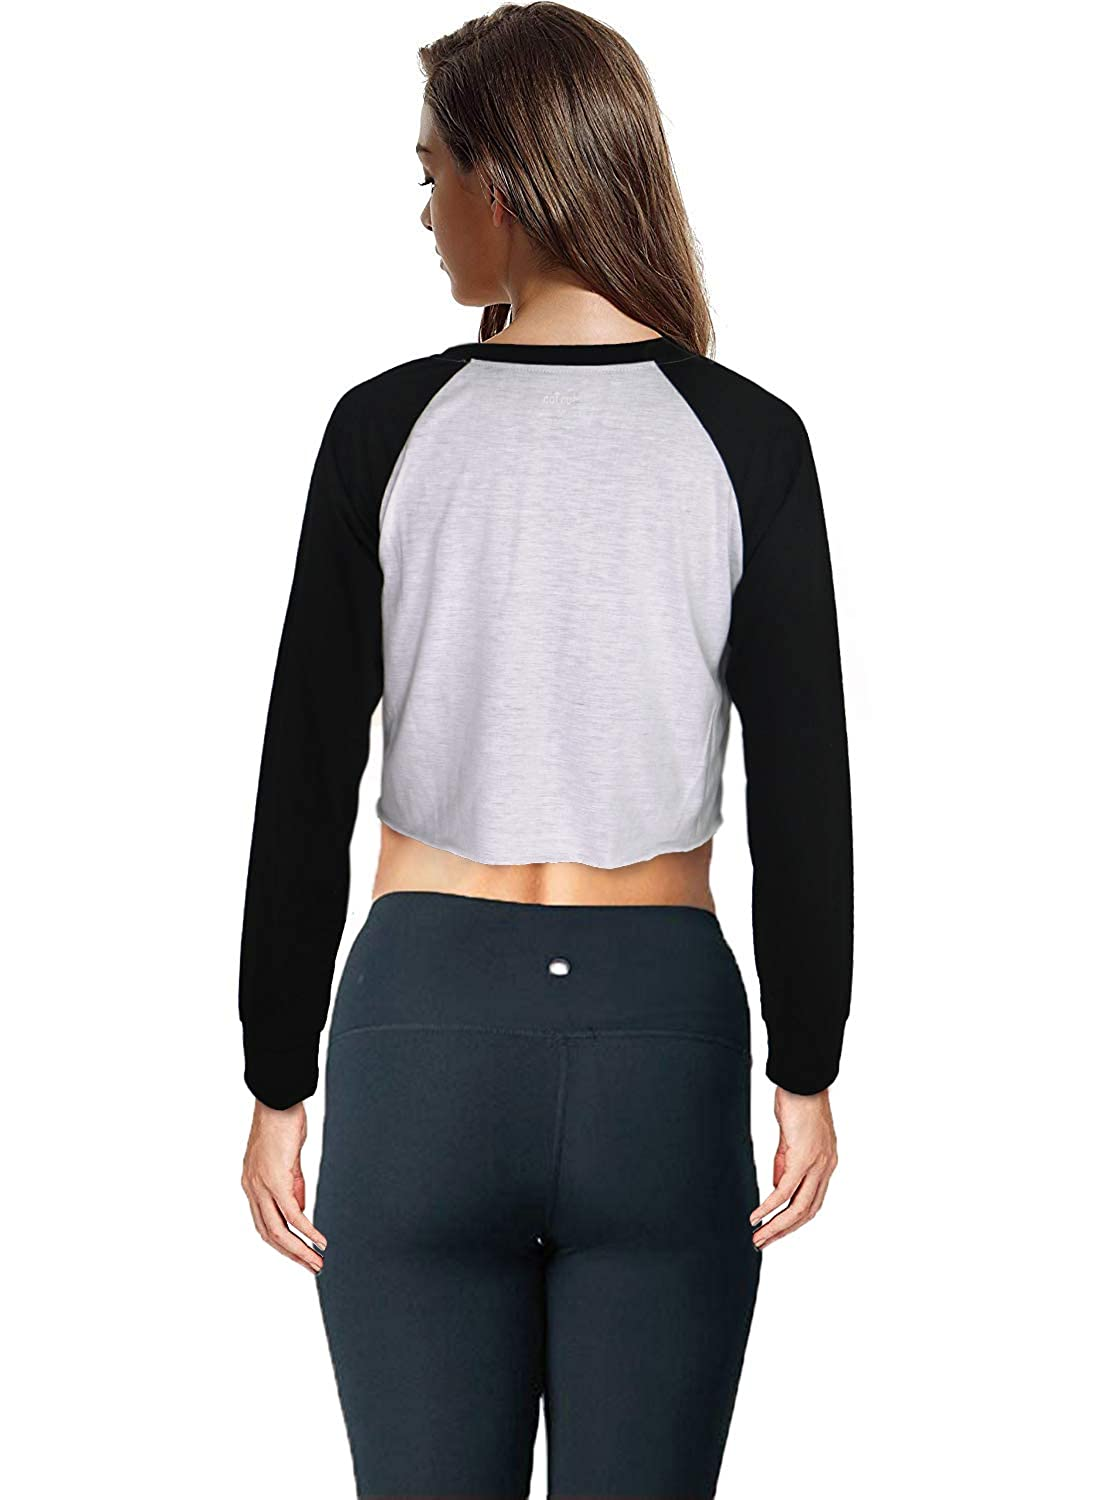 Womens Casual Round Neck Long Sleeve Crop Top Sweatshirts Athletic Workout Sports T-Shirt